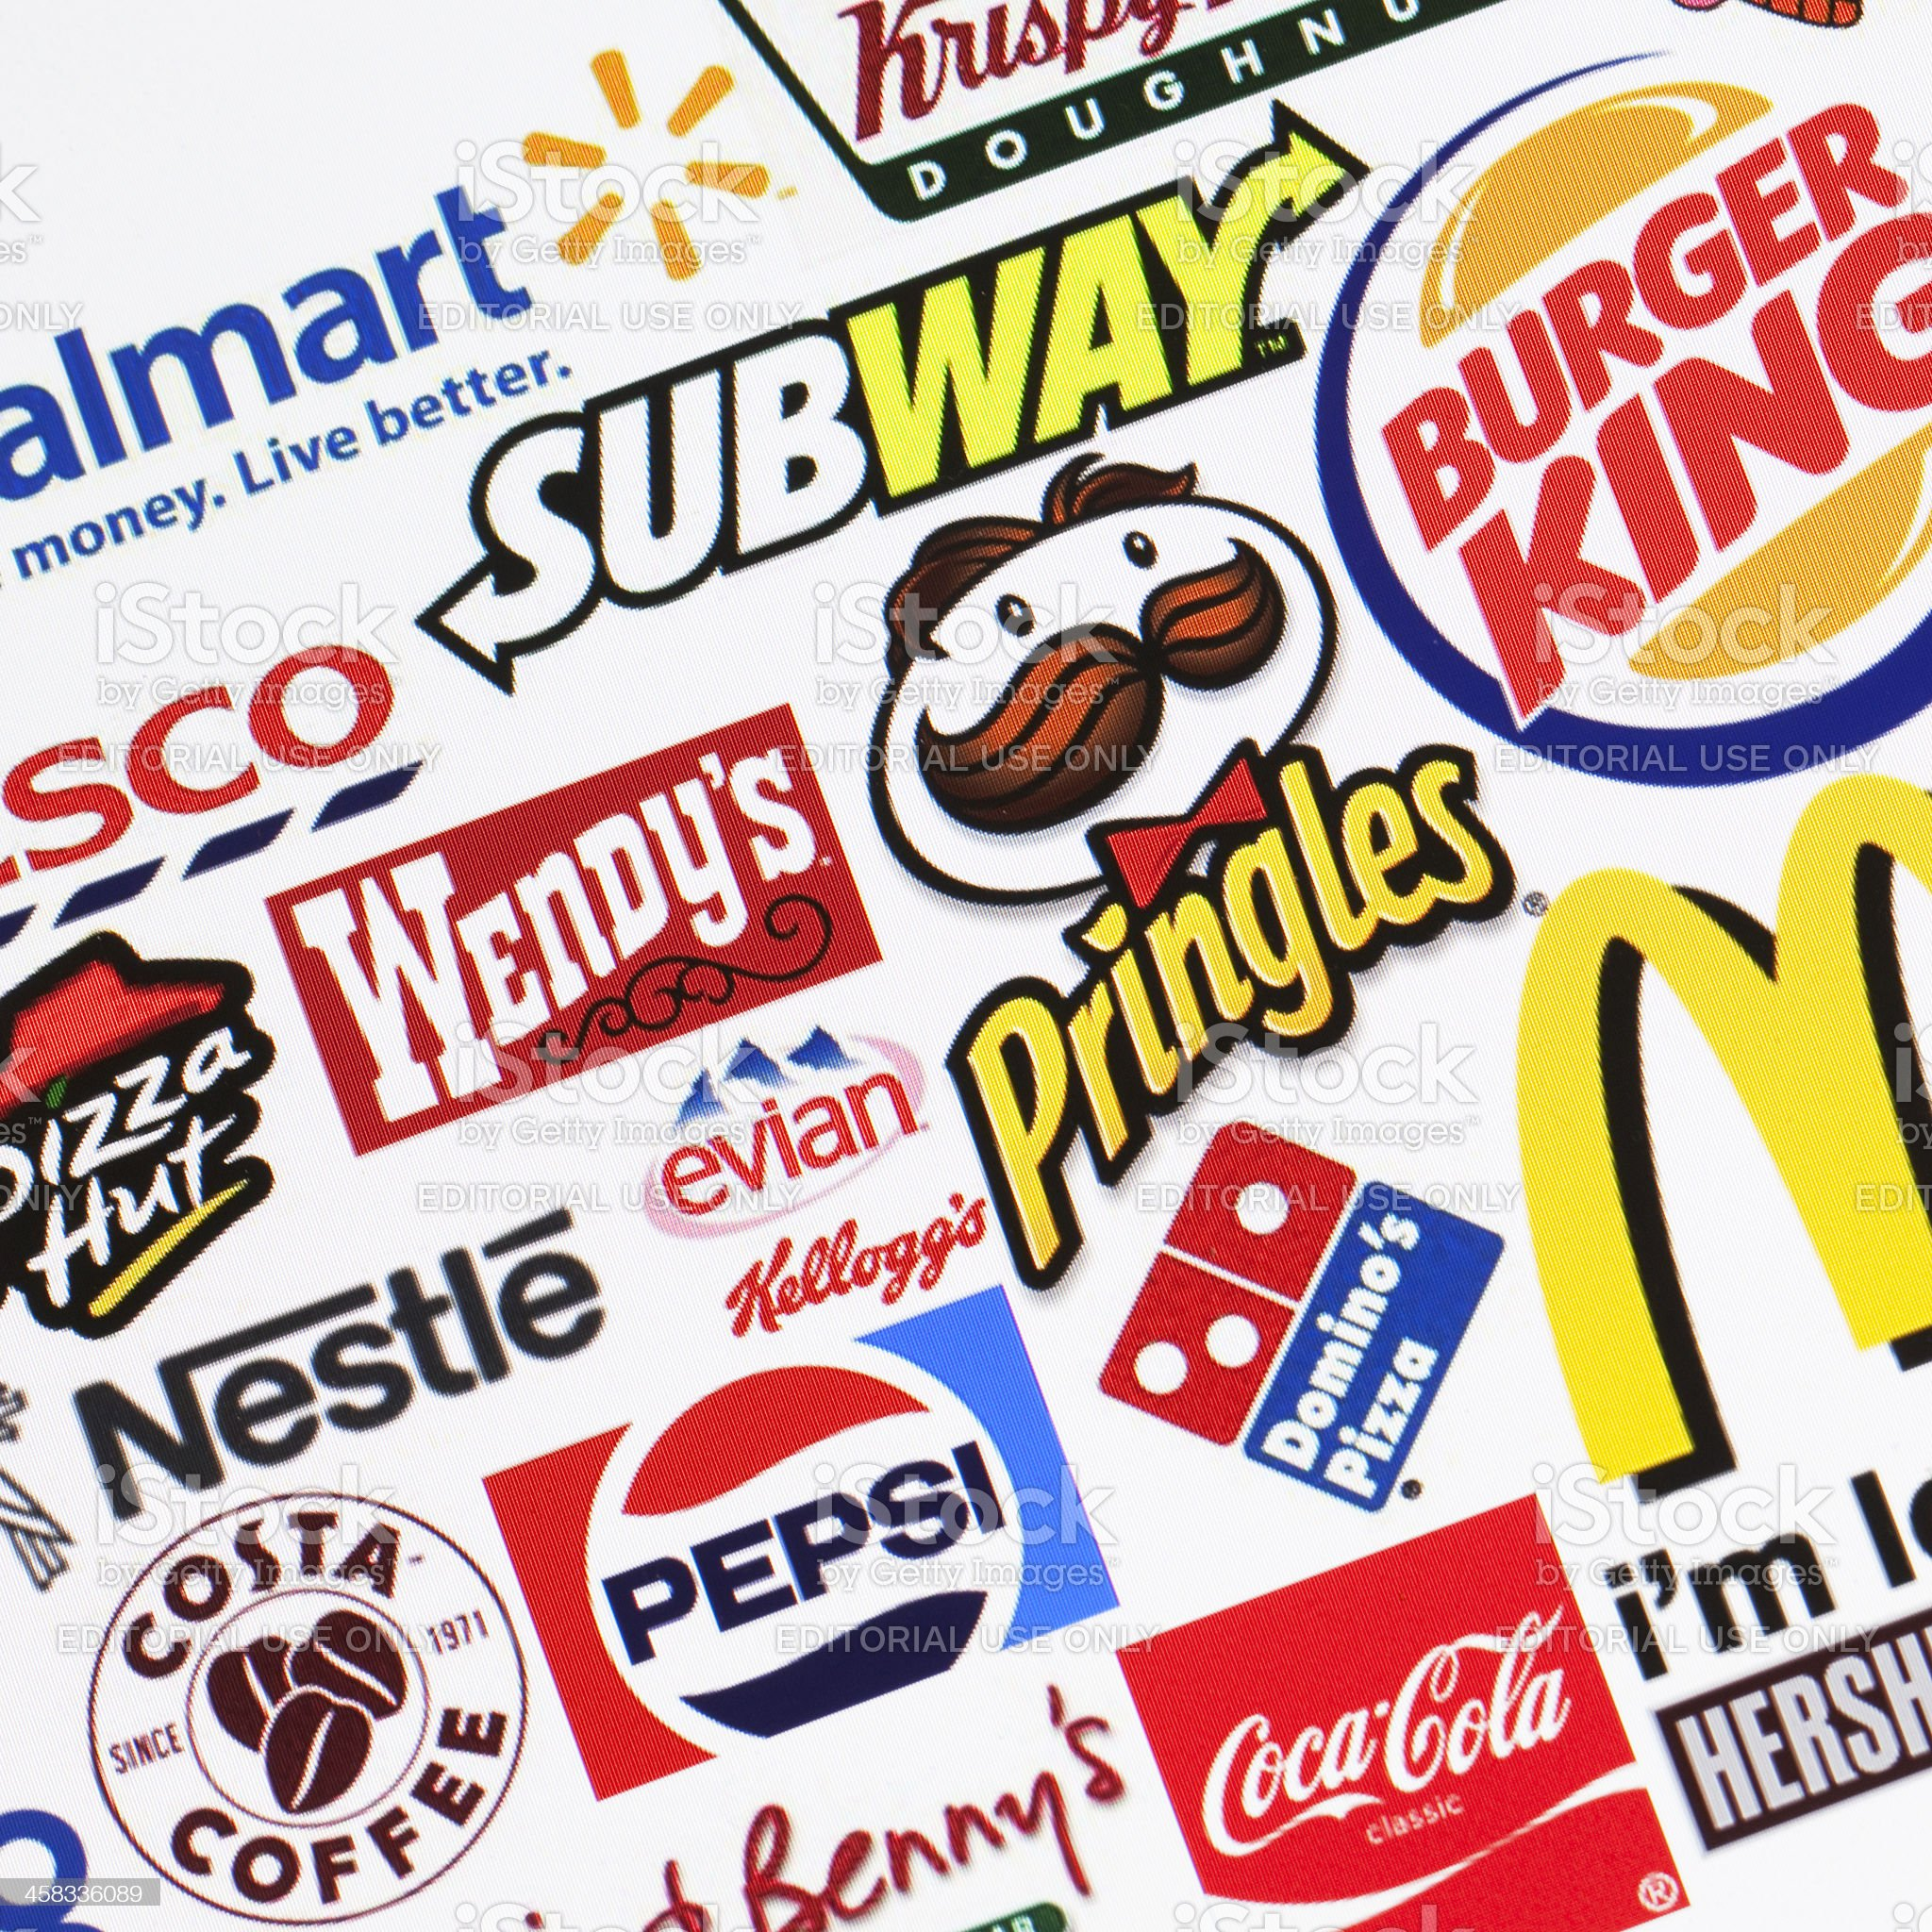 Global food brands background royalty-free stock photo